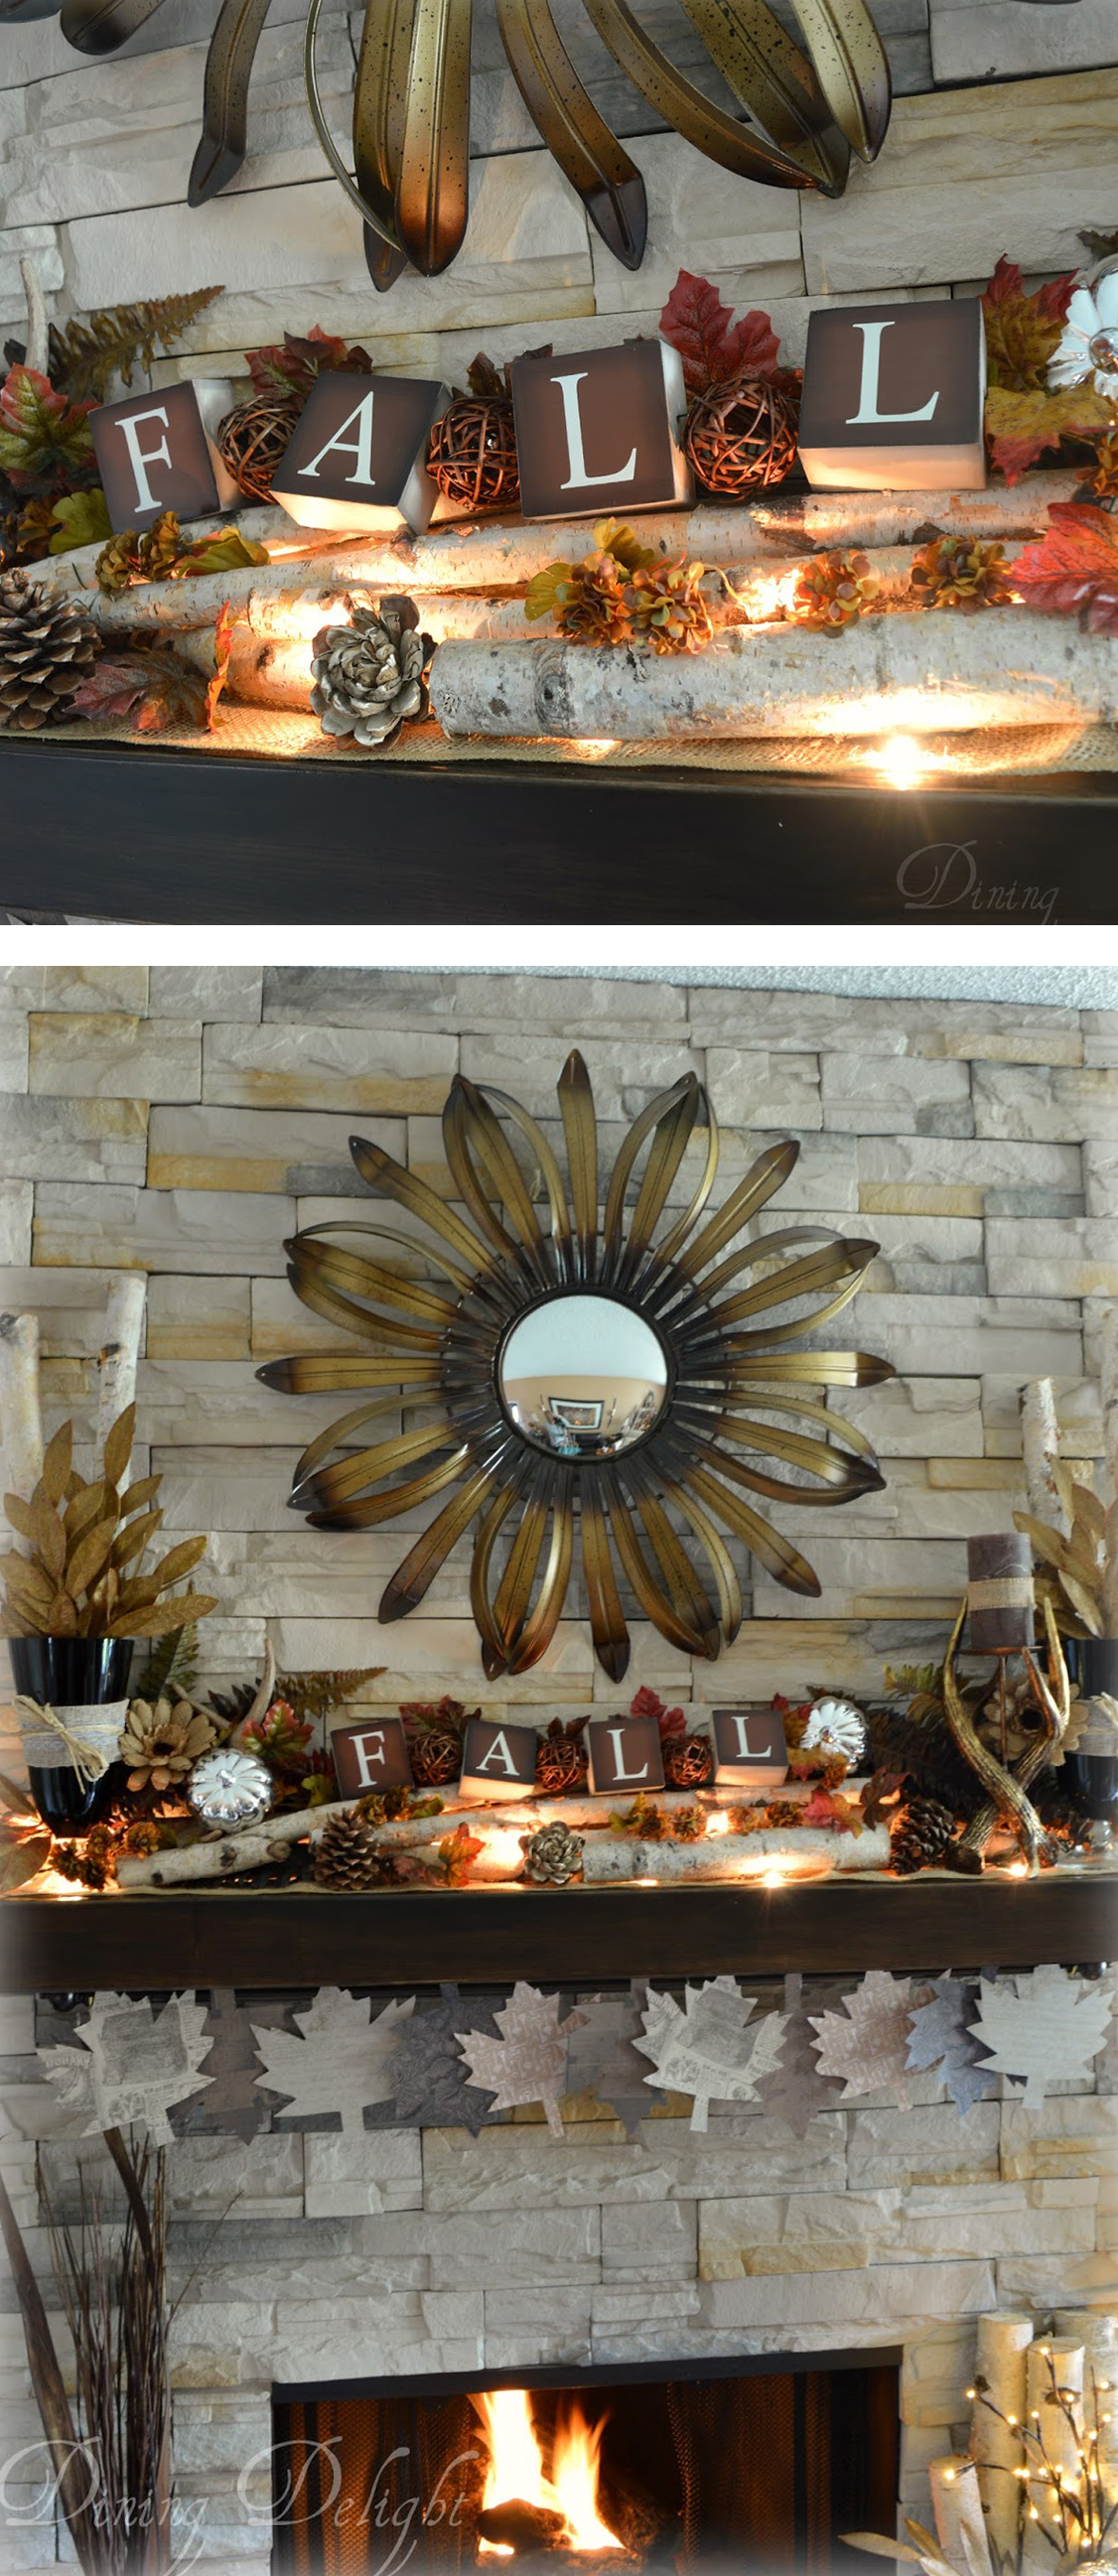 Decorating Ideas For Small Bathrooms In Apartments: 24 Best Fall Mantel Decorating Ideas And Designs For 2017